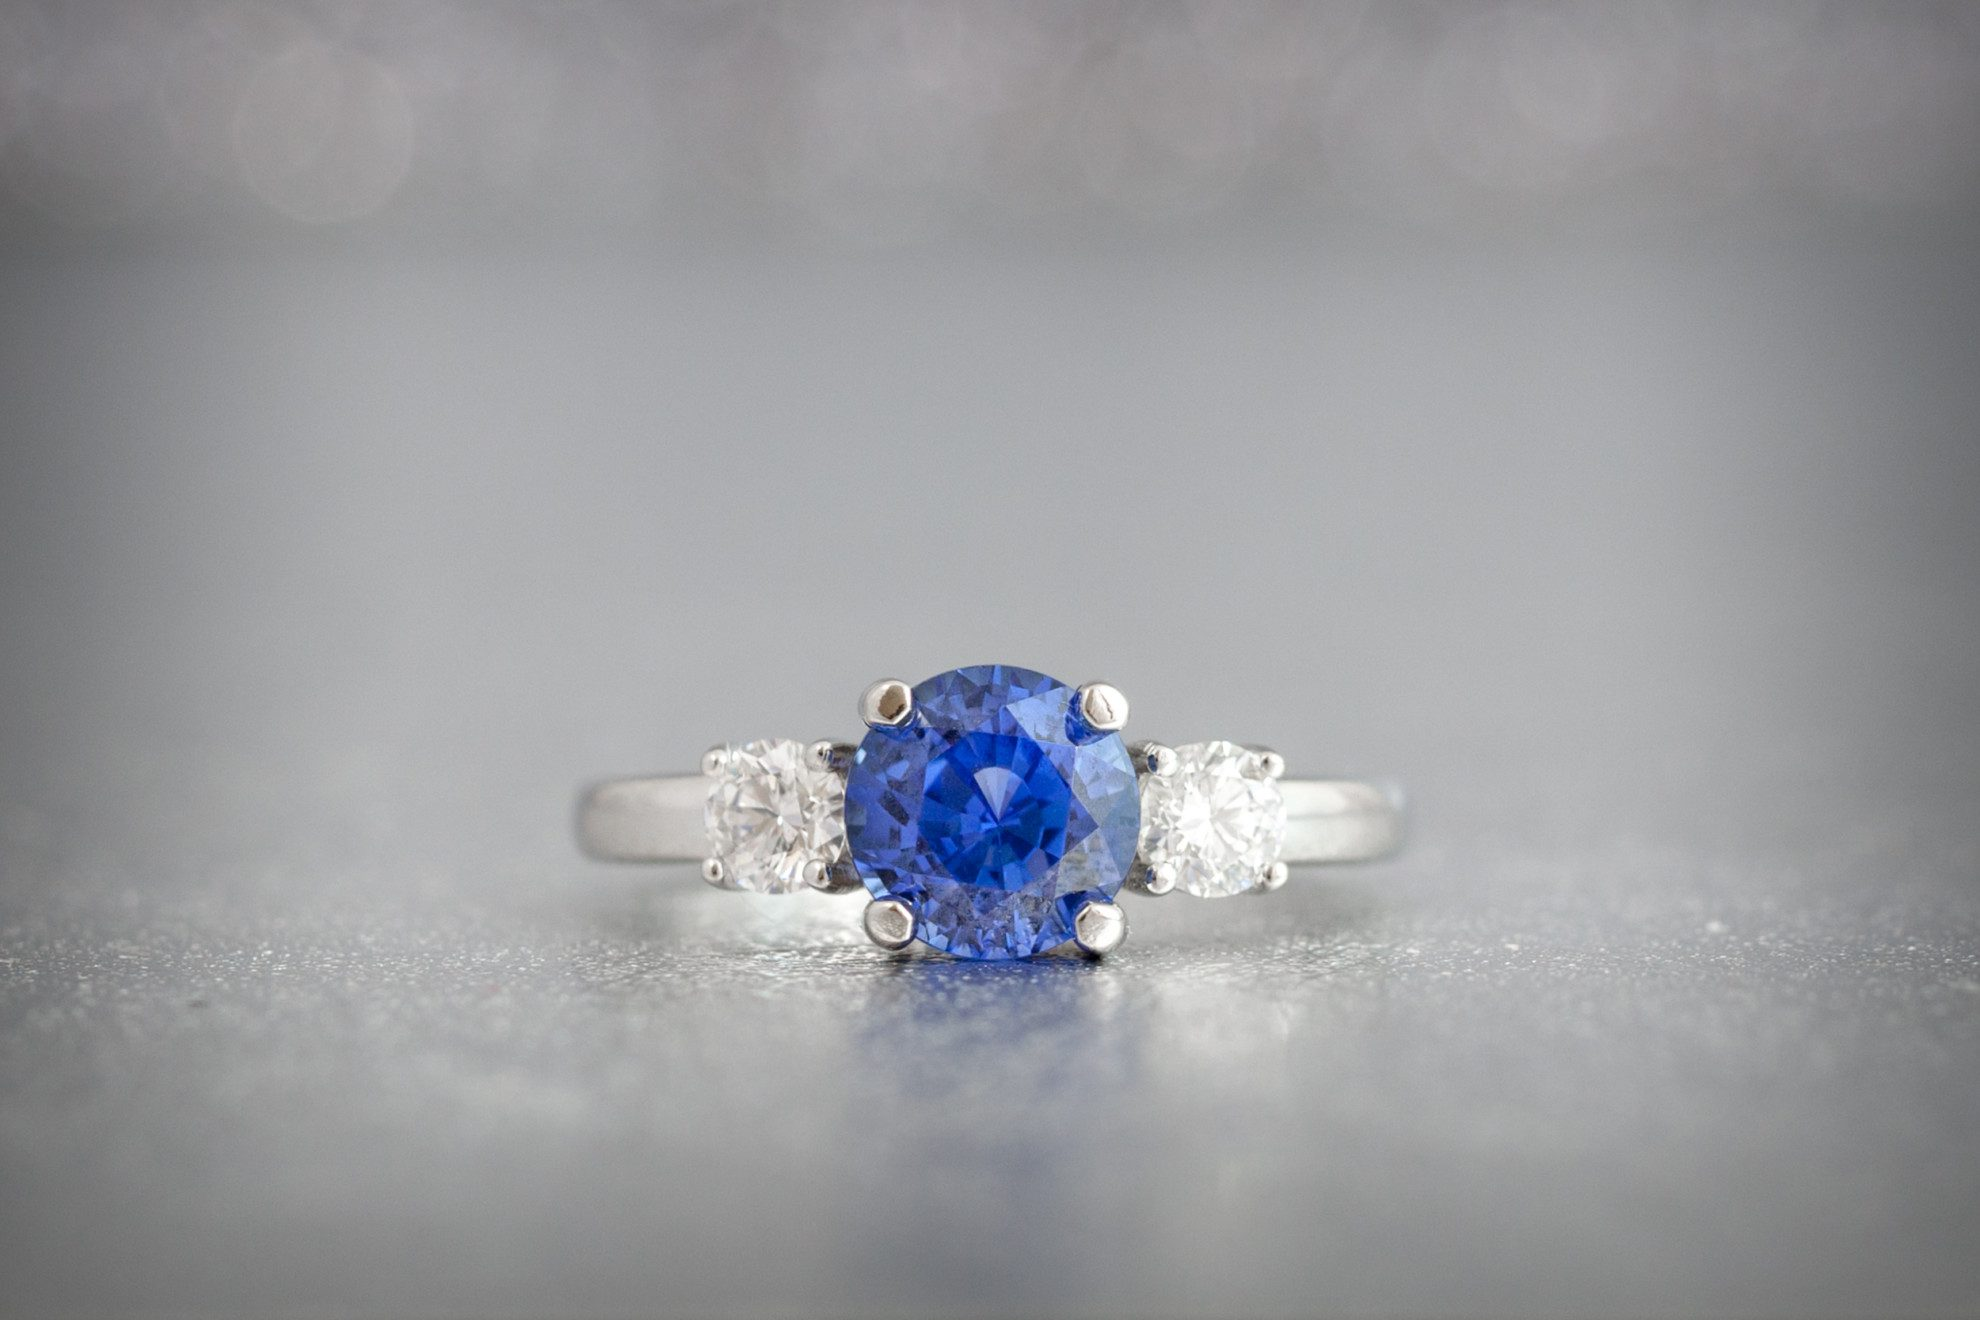 with gem vs rings diamond of inspirational ring engagement sapphire stones side elegant